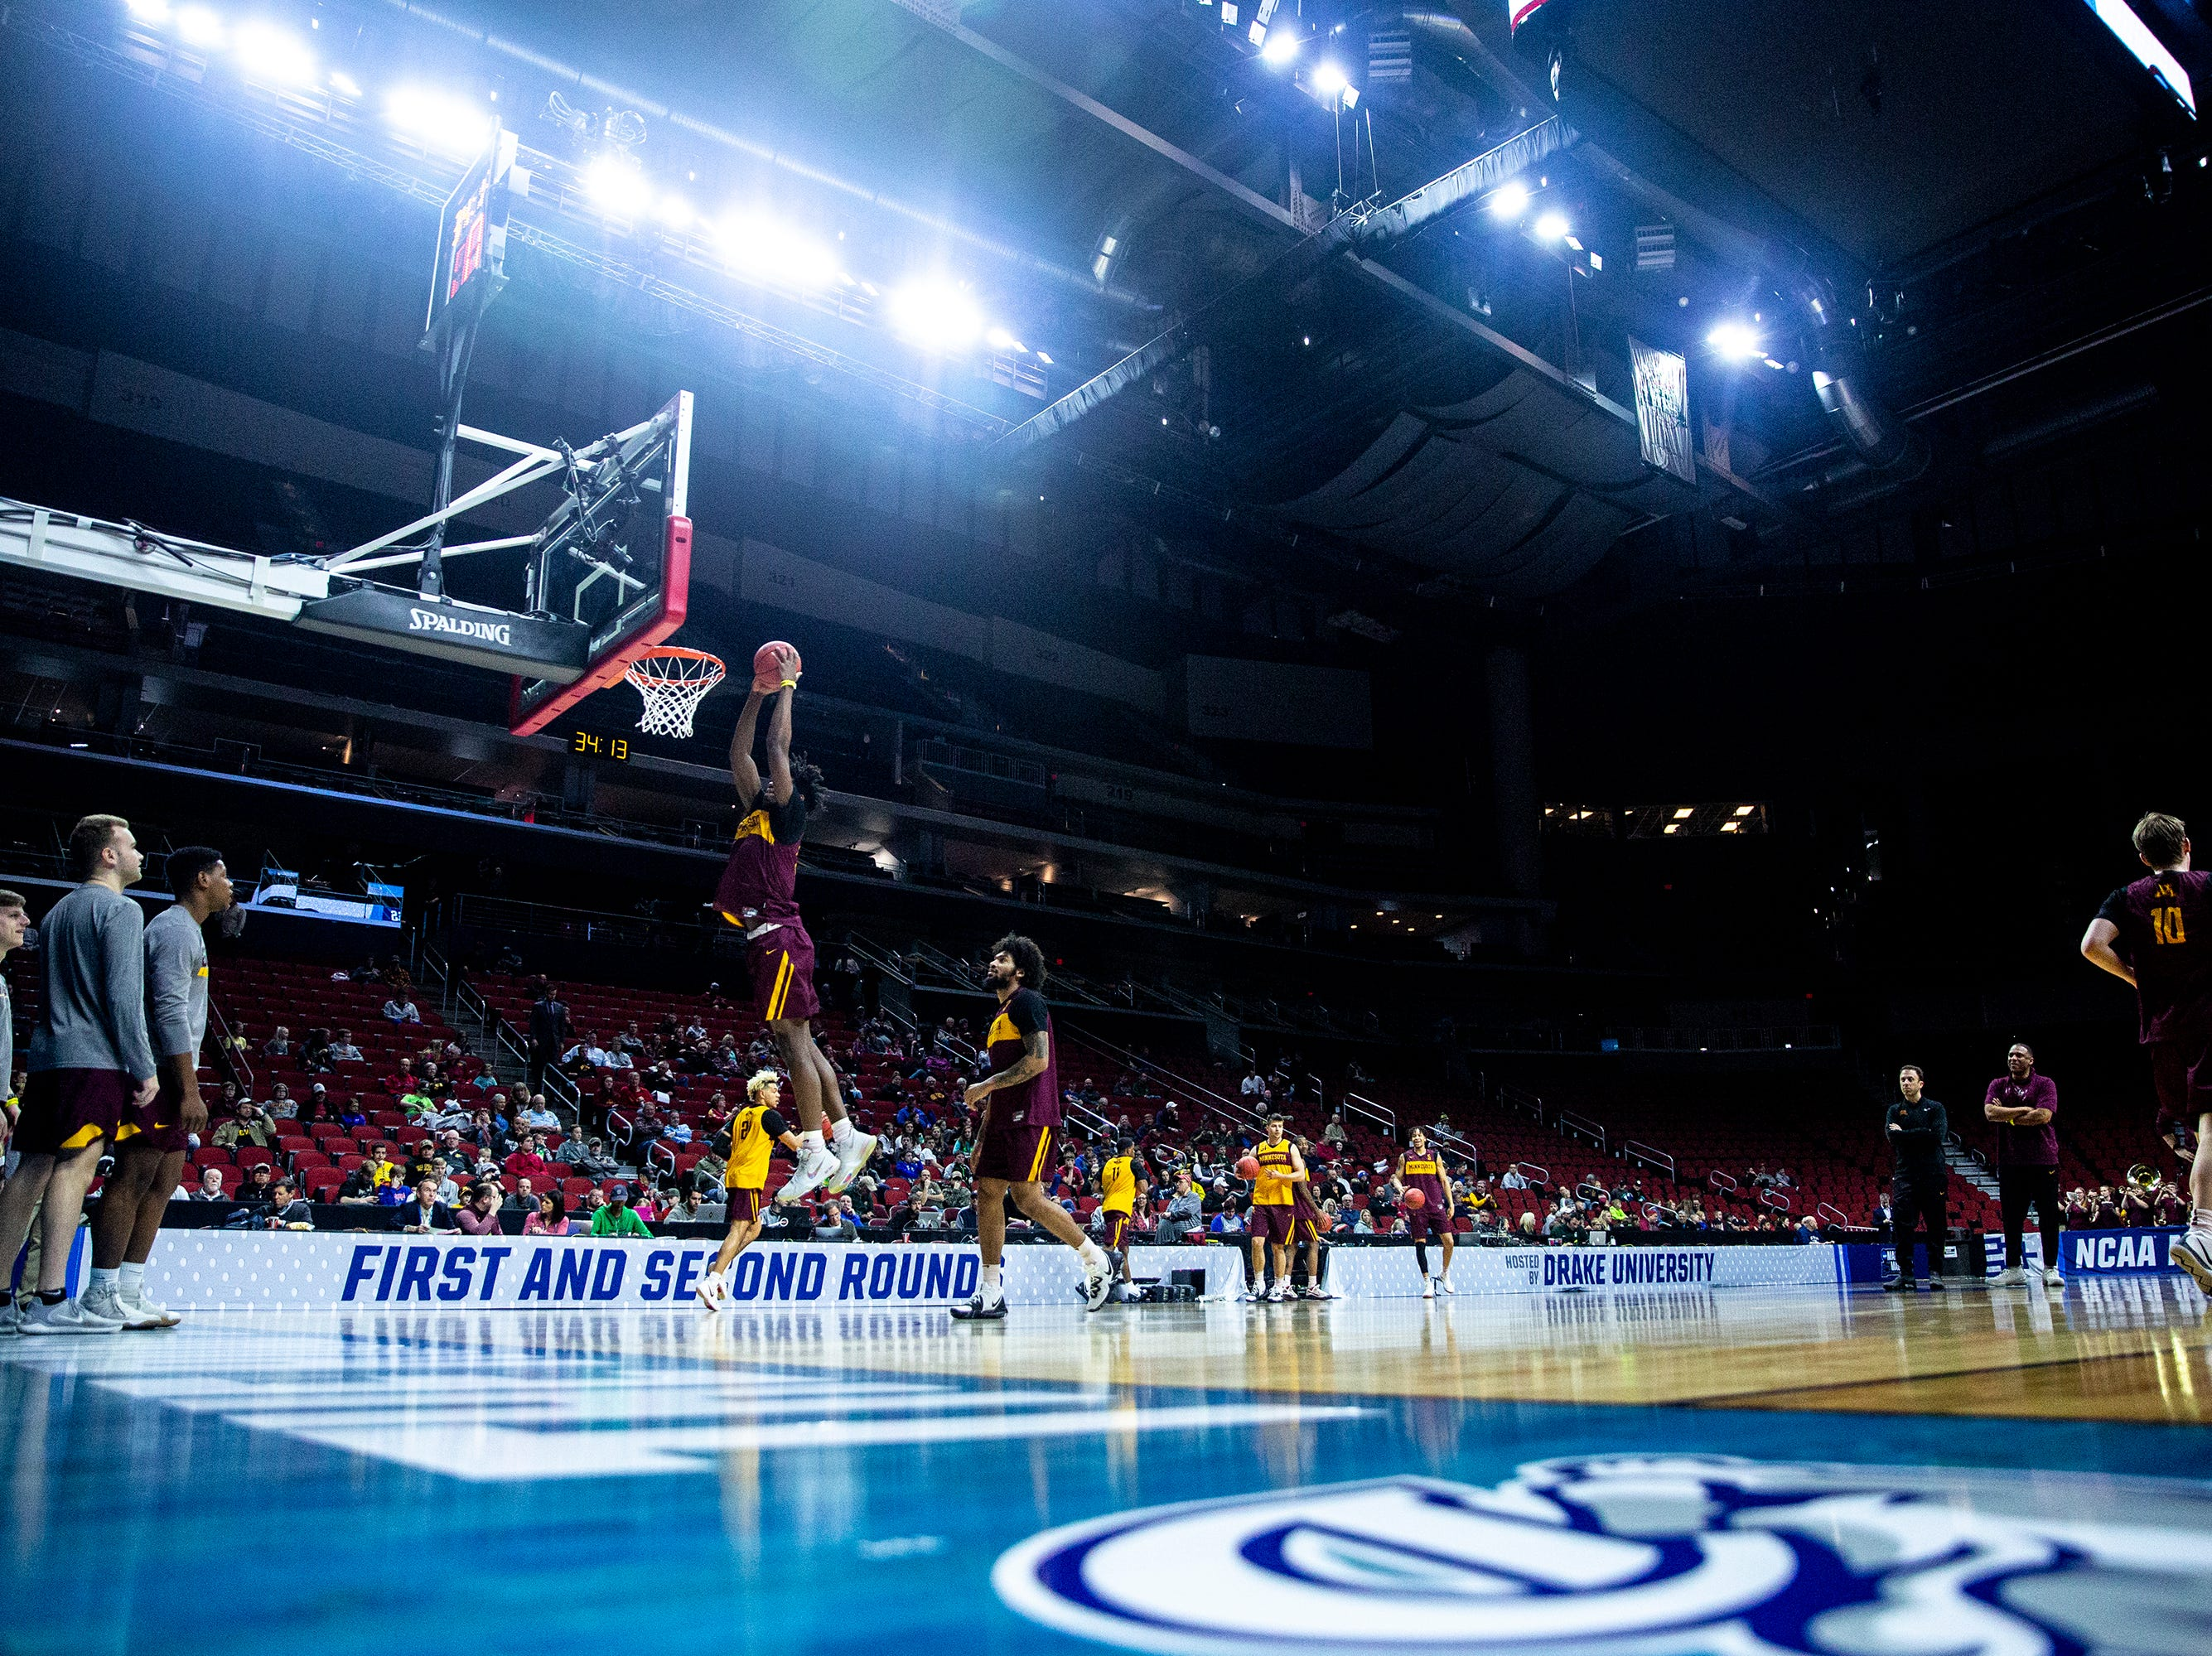 Plays run through shooting drills during Minnesota's open practice before the first round of the NCAA Men's Basketball Tournament on Wednesday, March 20, 2019, at Wells Fargo Arena in Des Moines, Iowa. Minnesota will face Louisville in the first round on Thursday.